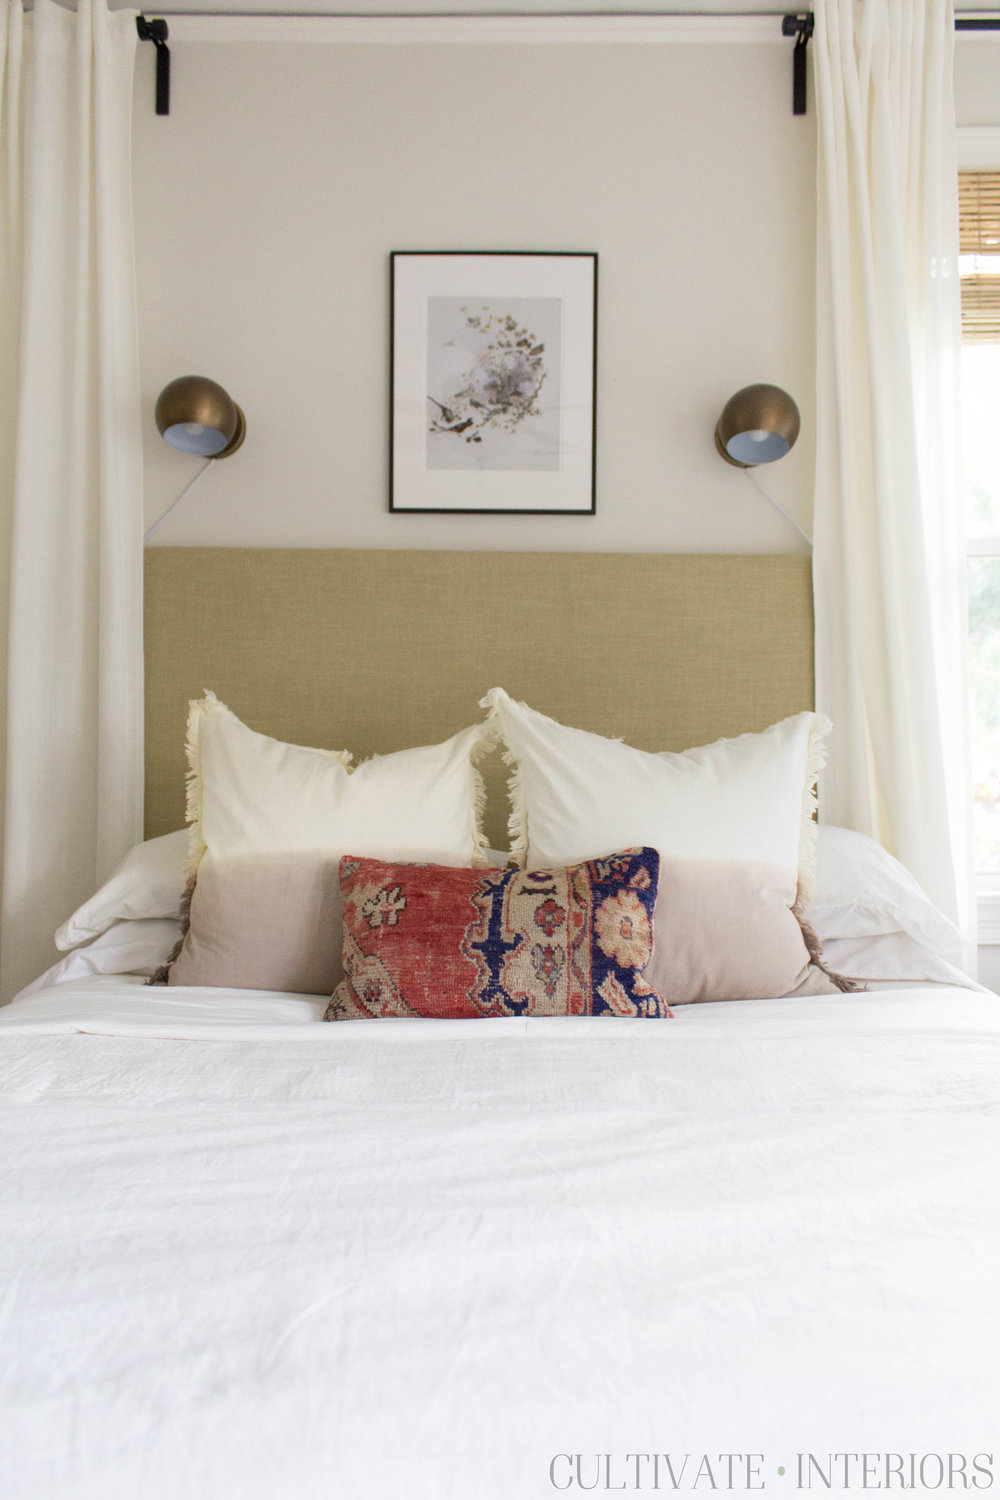 Red kilim pillow layered with fringed euro pillows and white bedding, eyeball sconces, and green headboard